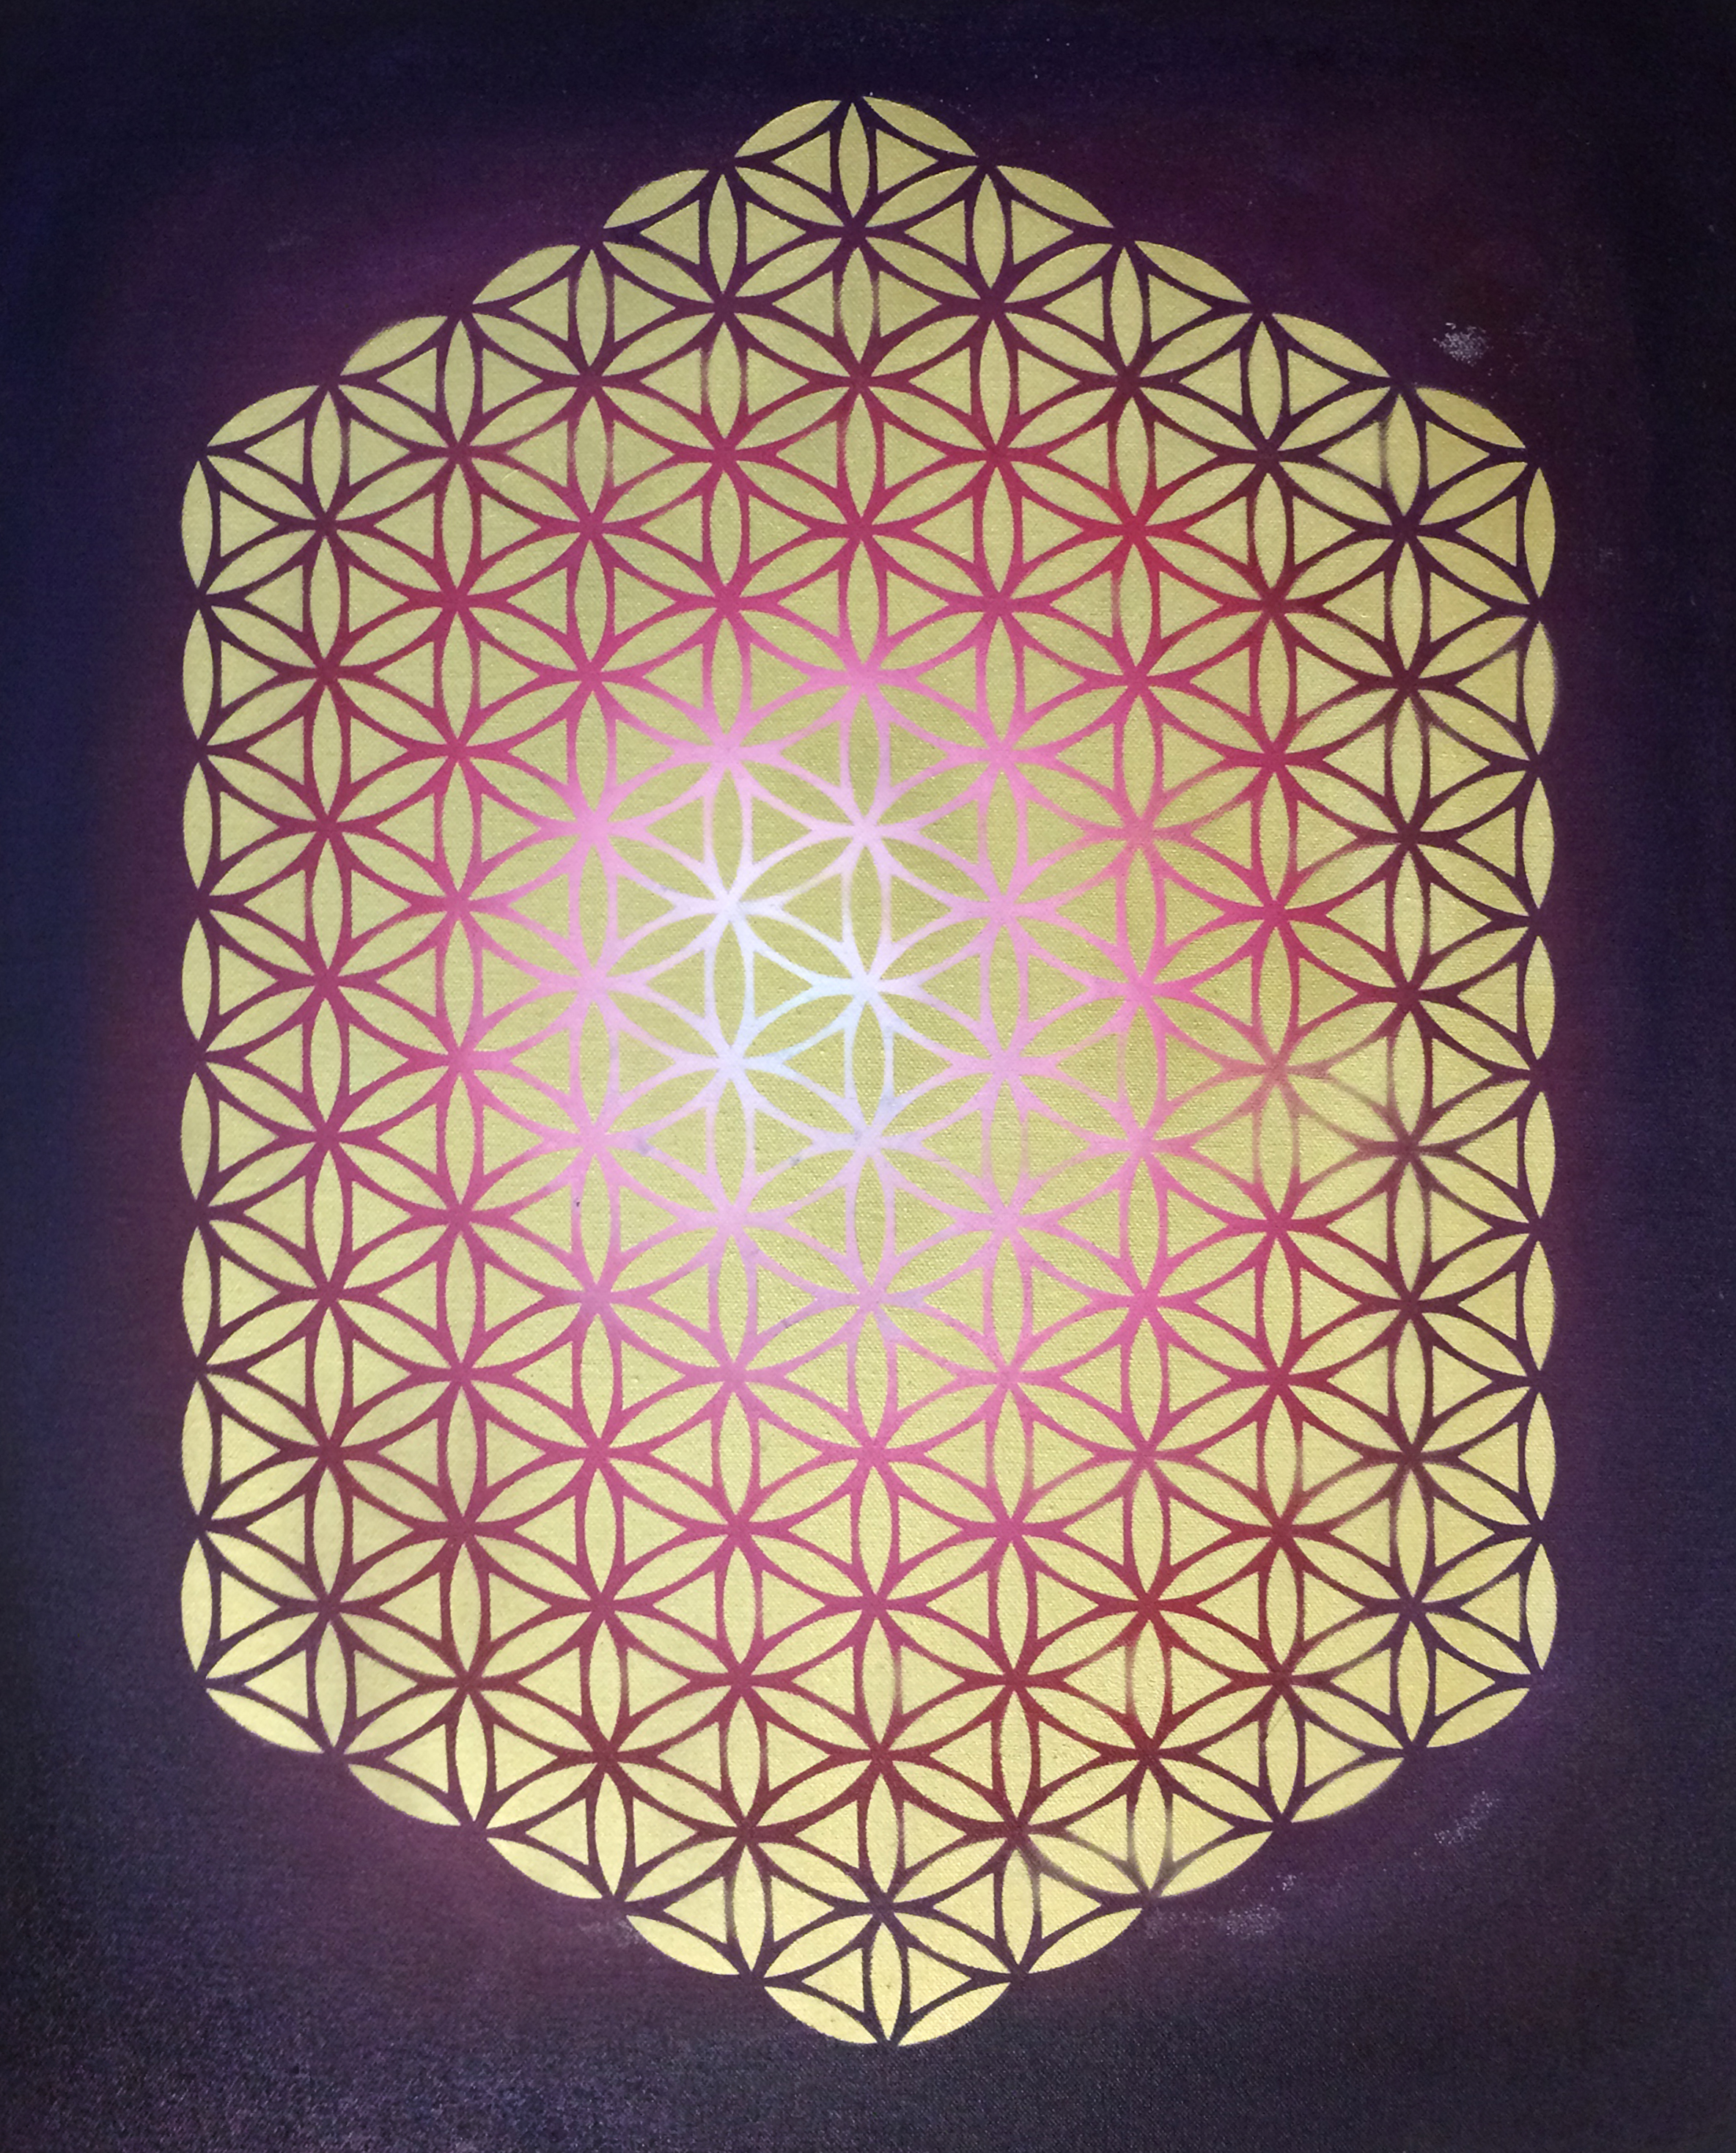 Large Geometric ower - Pink and purple